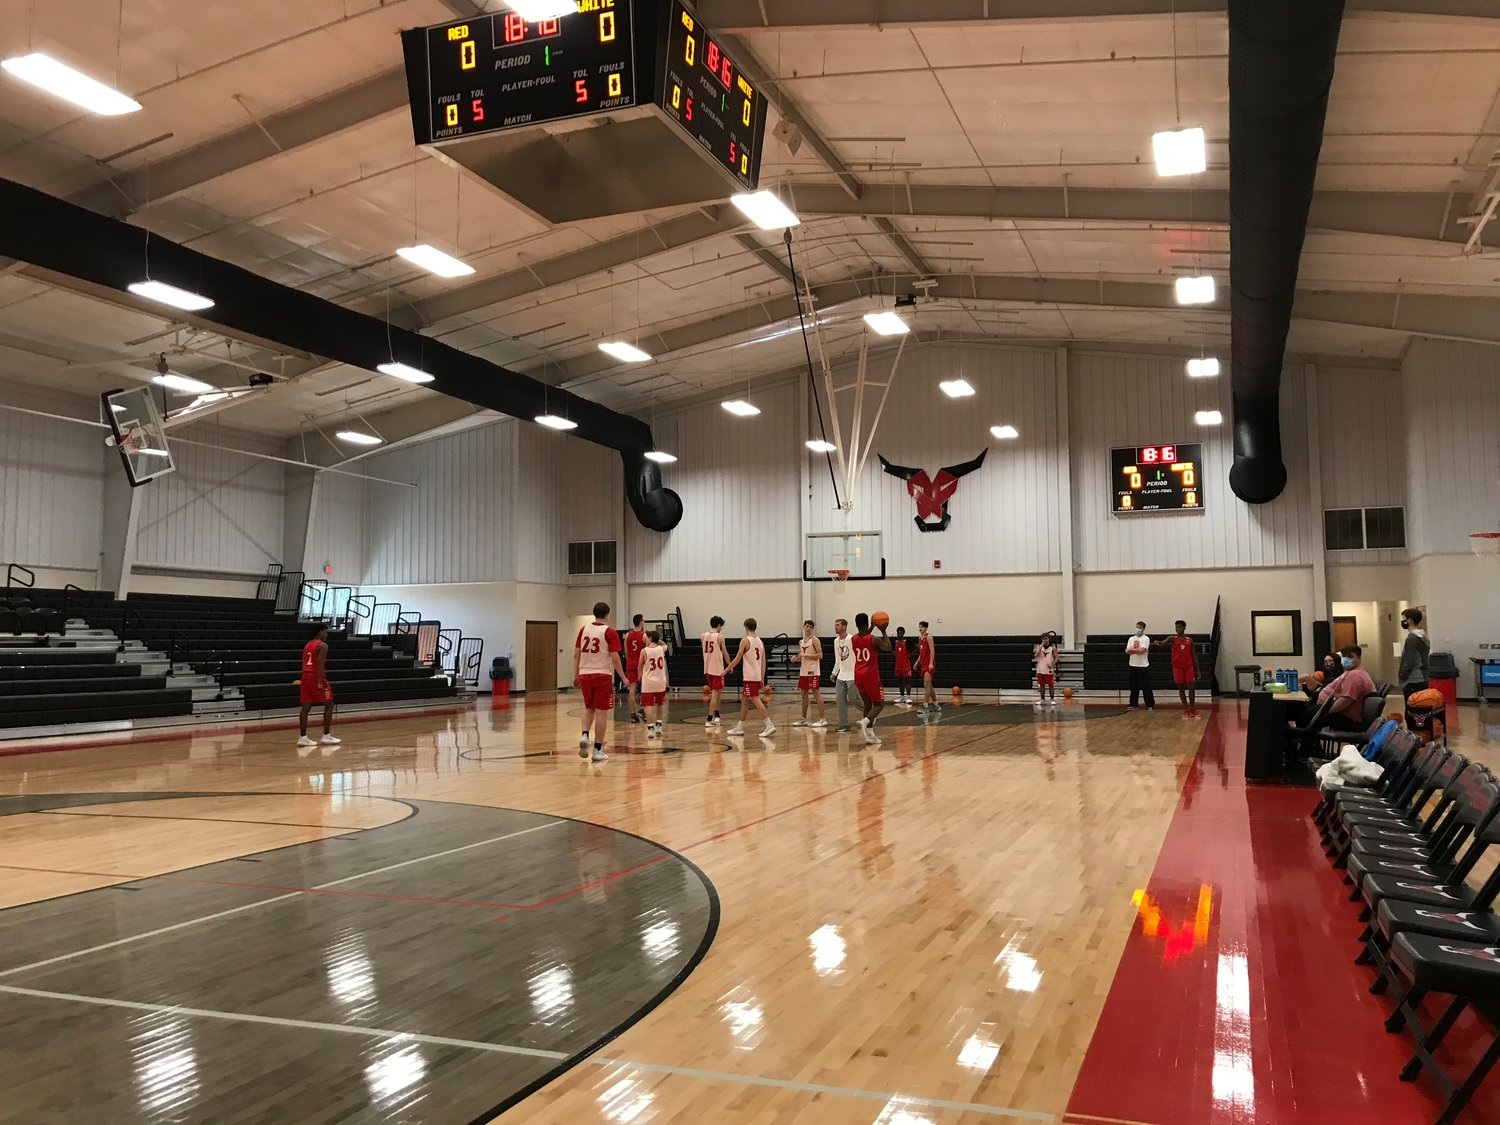 Basketball players practice in the new gymnasium at Spanish Fort High School.